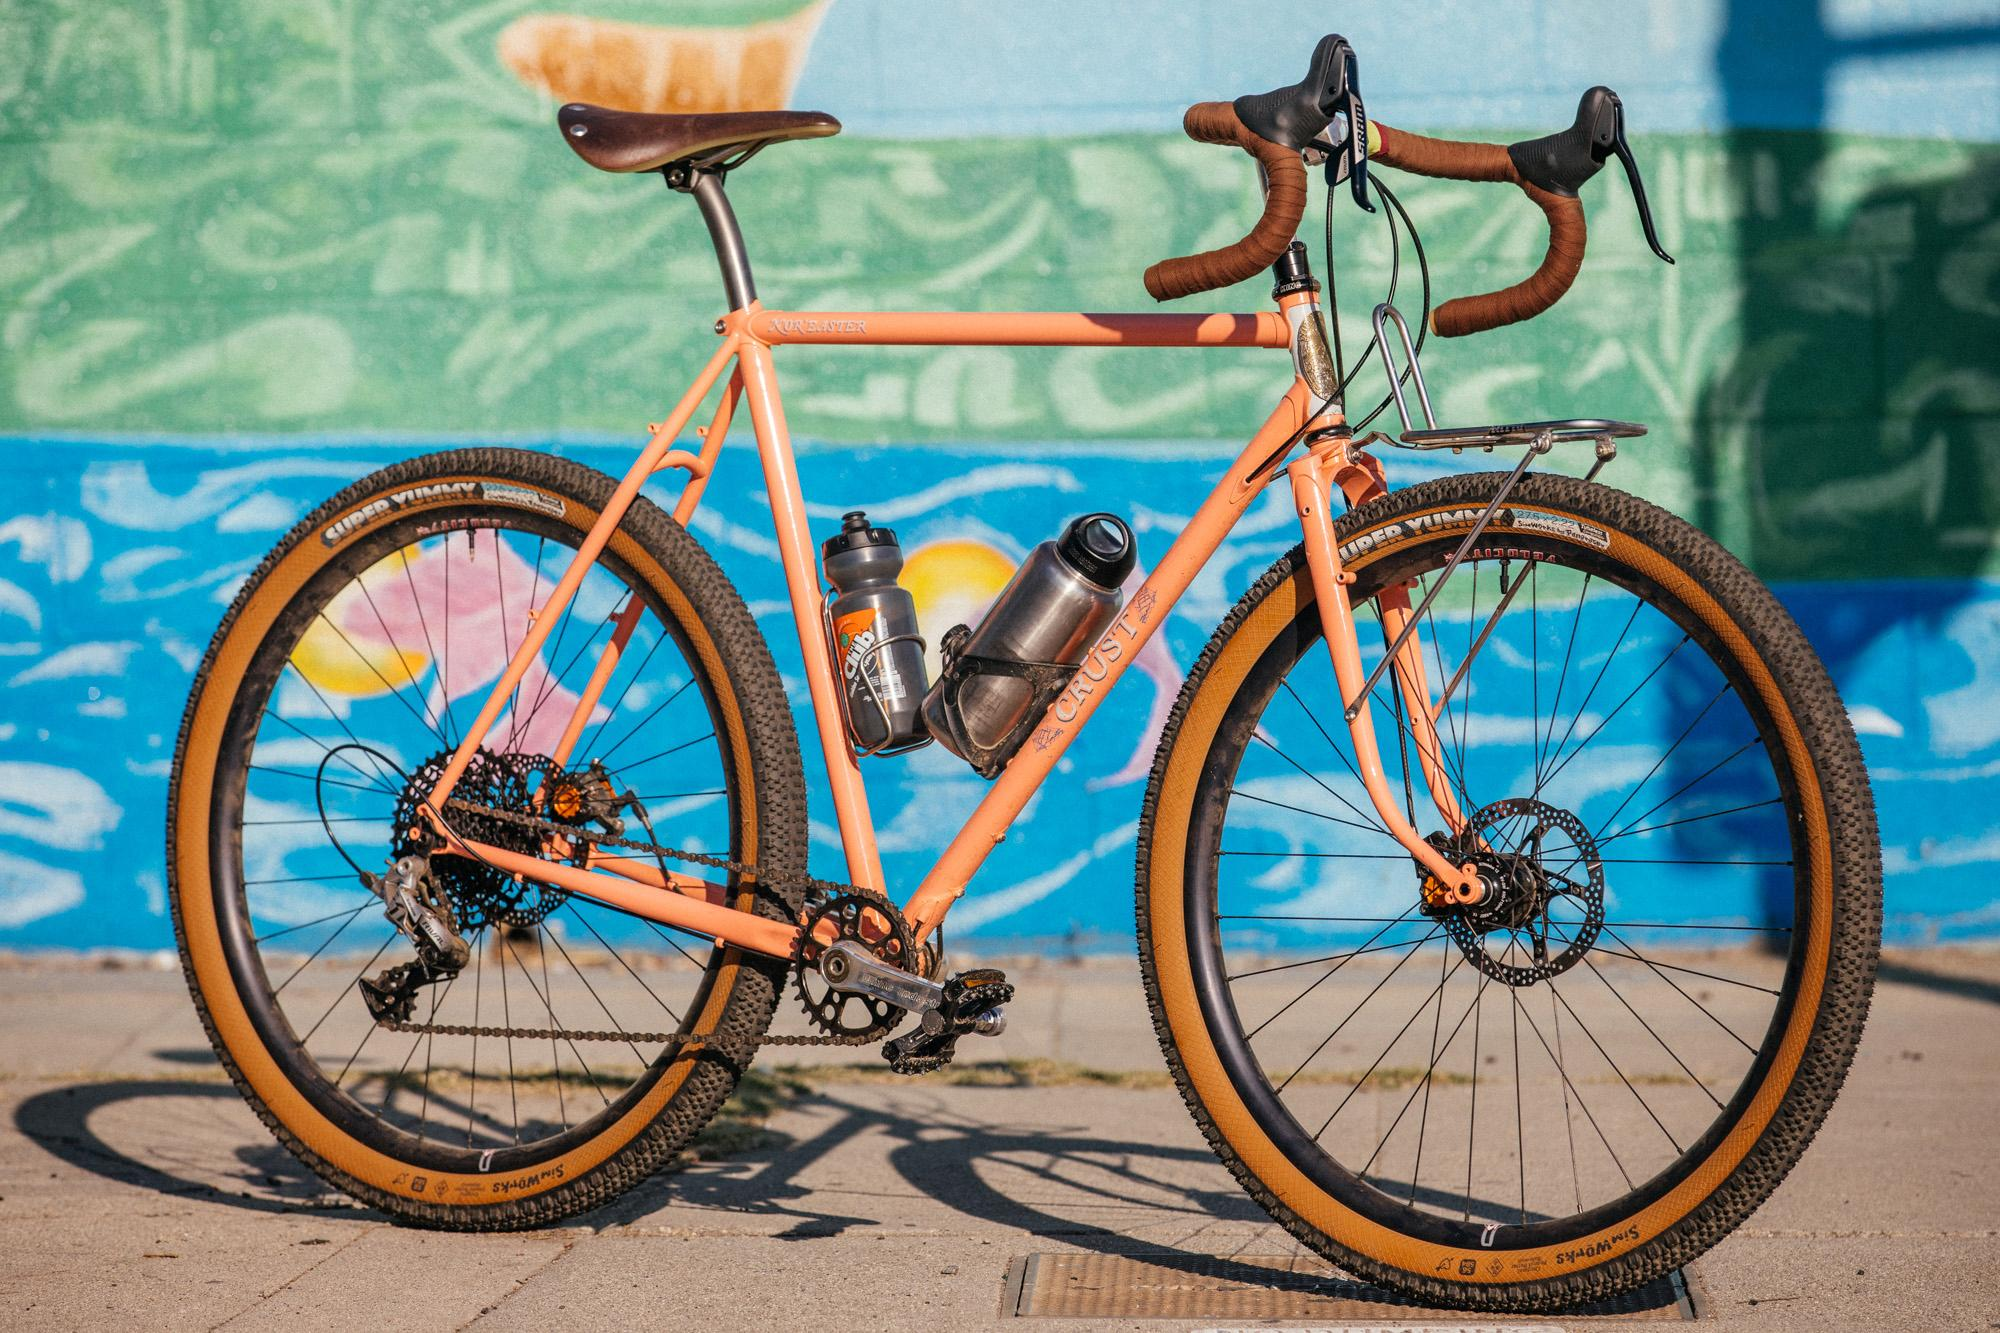 Mick's Crust Nor'Easter Dirty Tourer